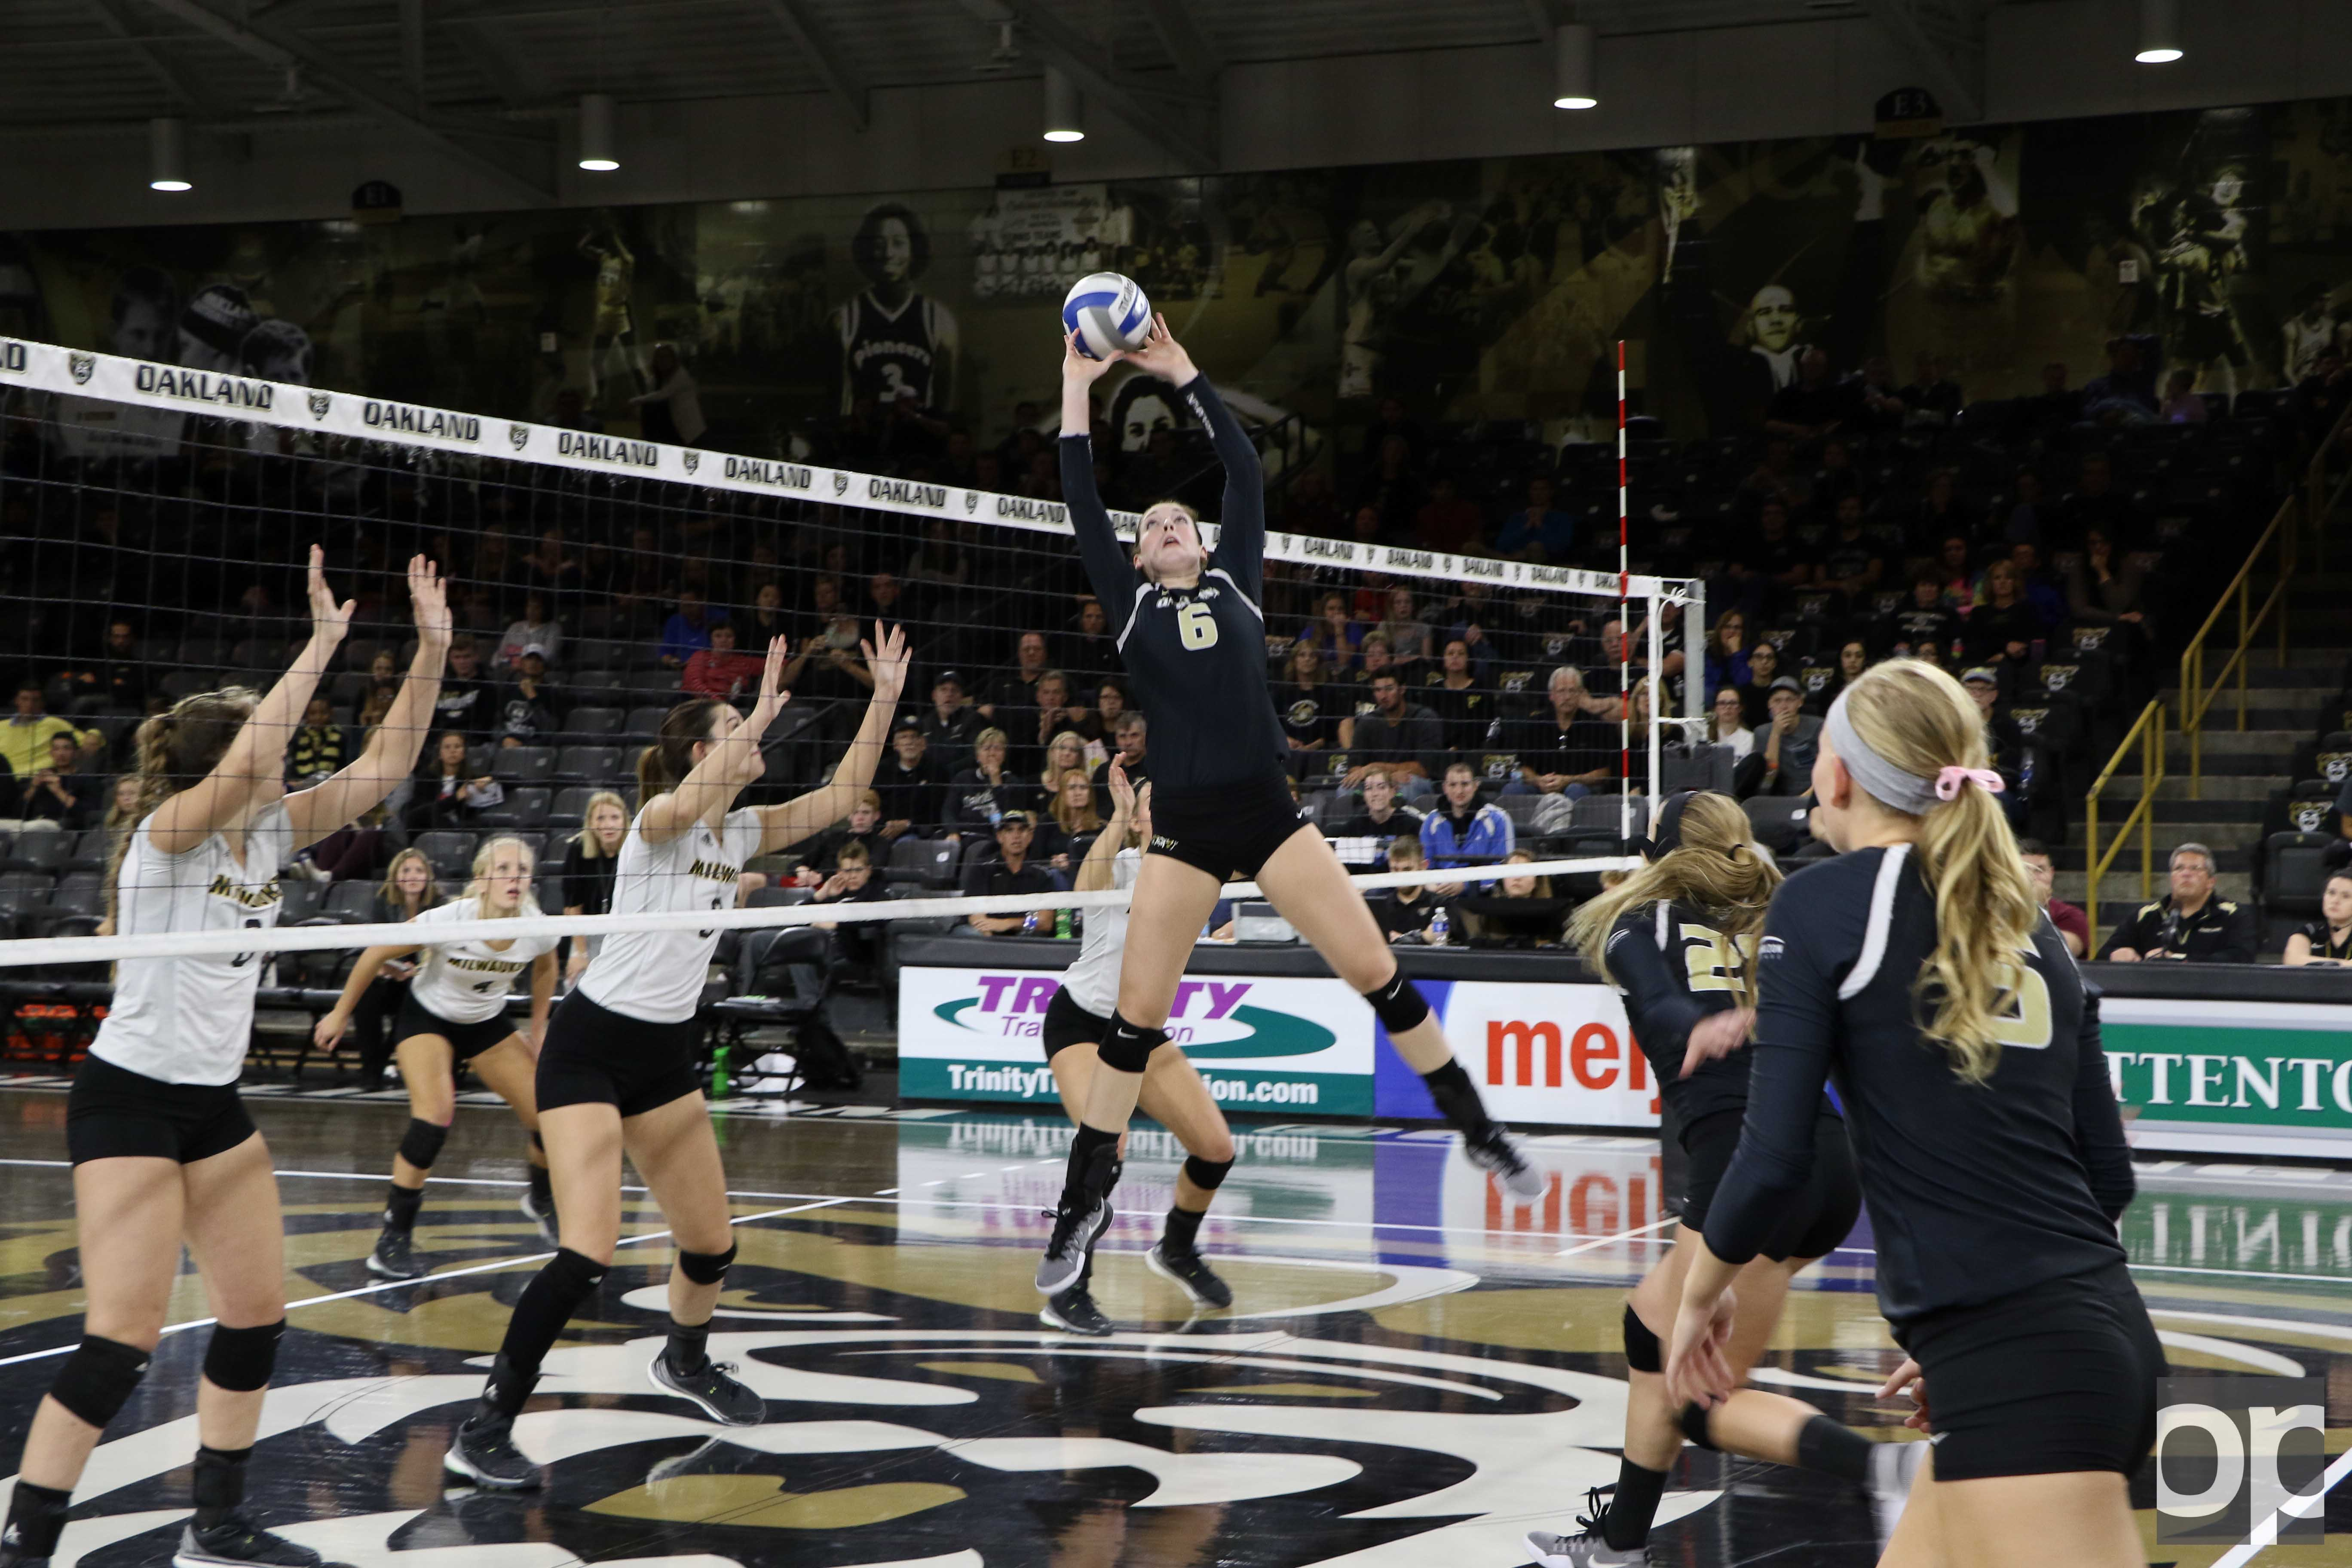 Oakland volleyball is now ranked #3 on the Horizon League standings.